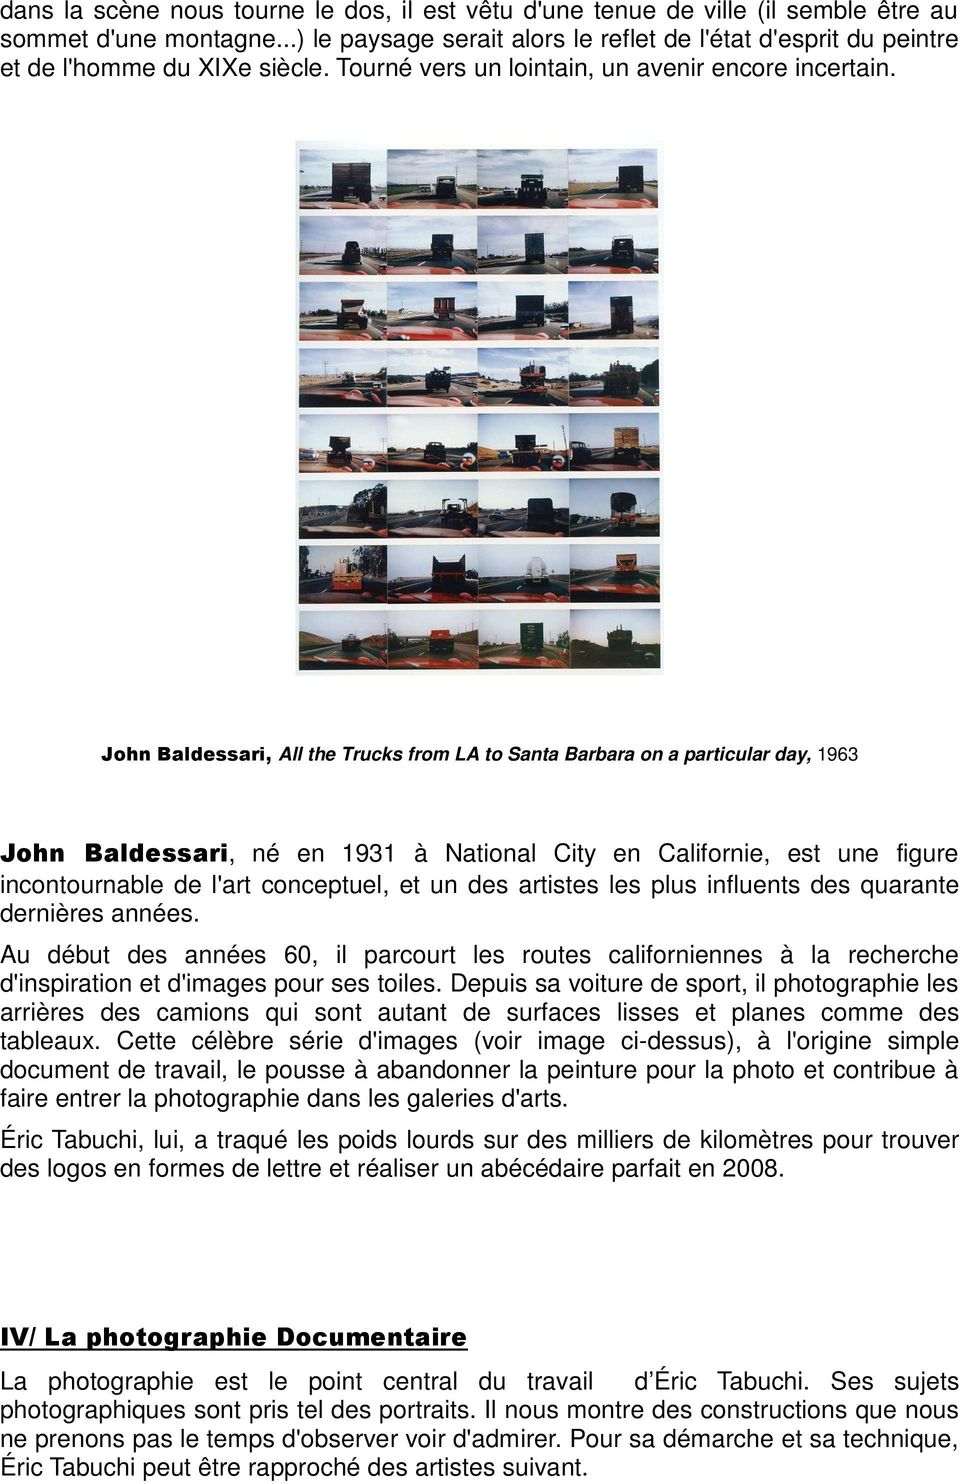 John Baldessari, All the Trucks from LA to Santa Barbara on a particular day, 1963 John Baldessari, né en 1931 à National City en Californie, est une figure incontournable de l'art conceptuel, et un